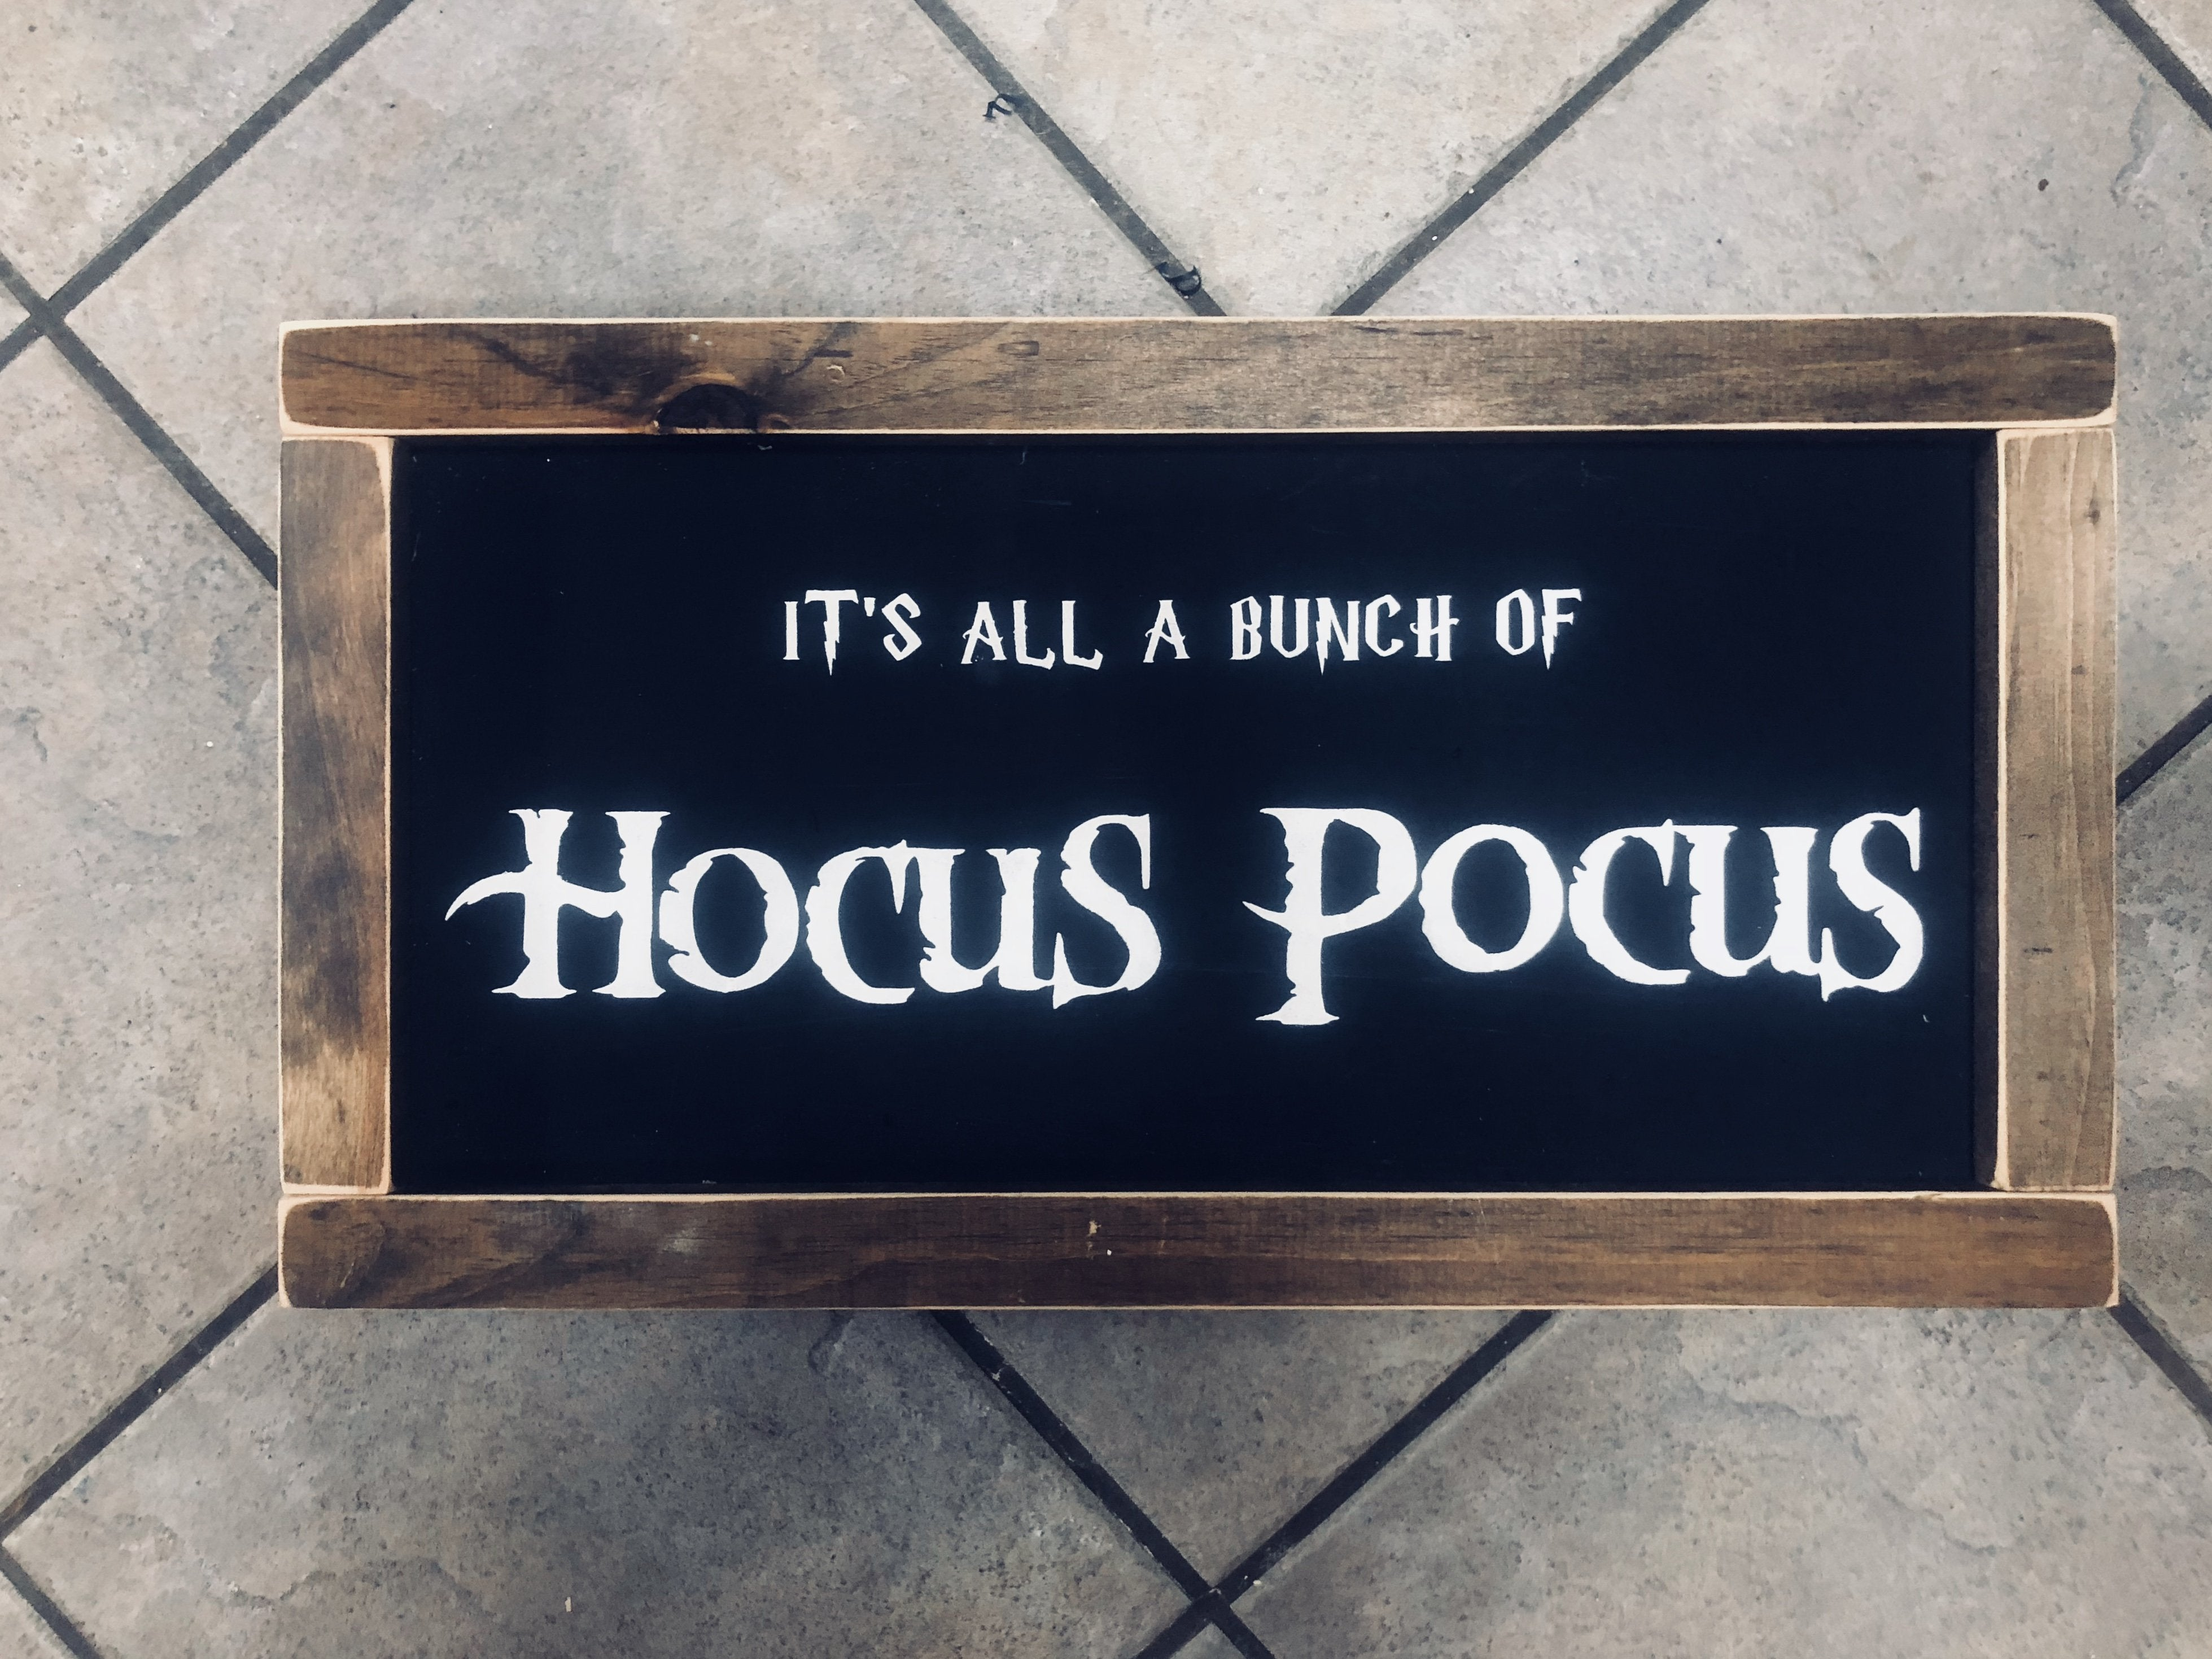 It's All A Bunch of Hocus Pocus